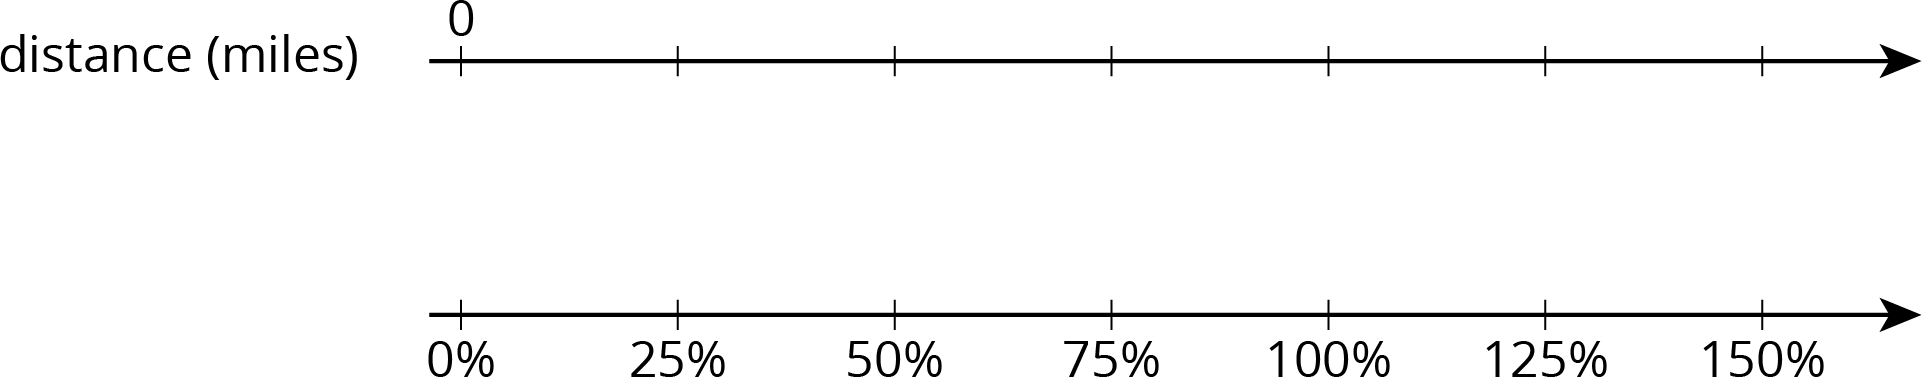 "A double number line for ""distance in miles"" with 7 evenly spaced tick marks. The top number line has the number 0 on the first tick mark and the remaining tick marks are blank. The bottom number line starting with the first tick mark, 0 percent, 25 percent, 50 percent, 75 percent, 100 percent, 125 percent and 150 percent are labeled"